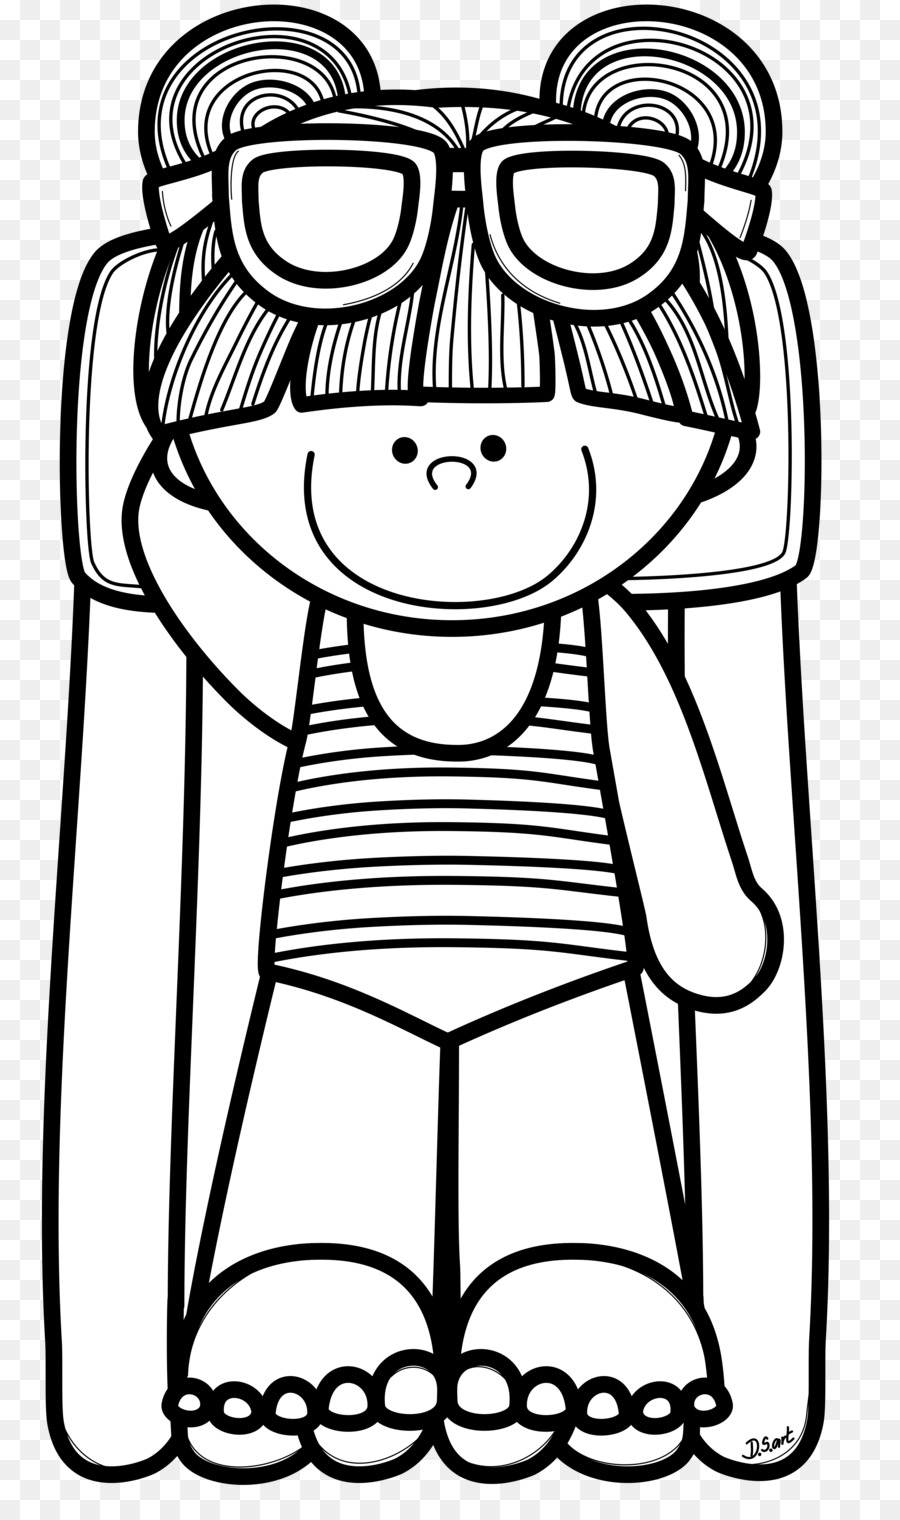 hight resolution of coloring book black and white color clothing png